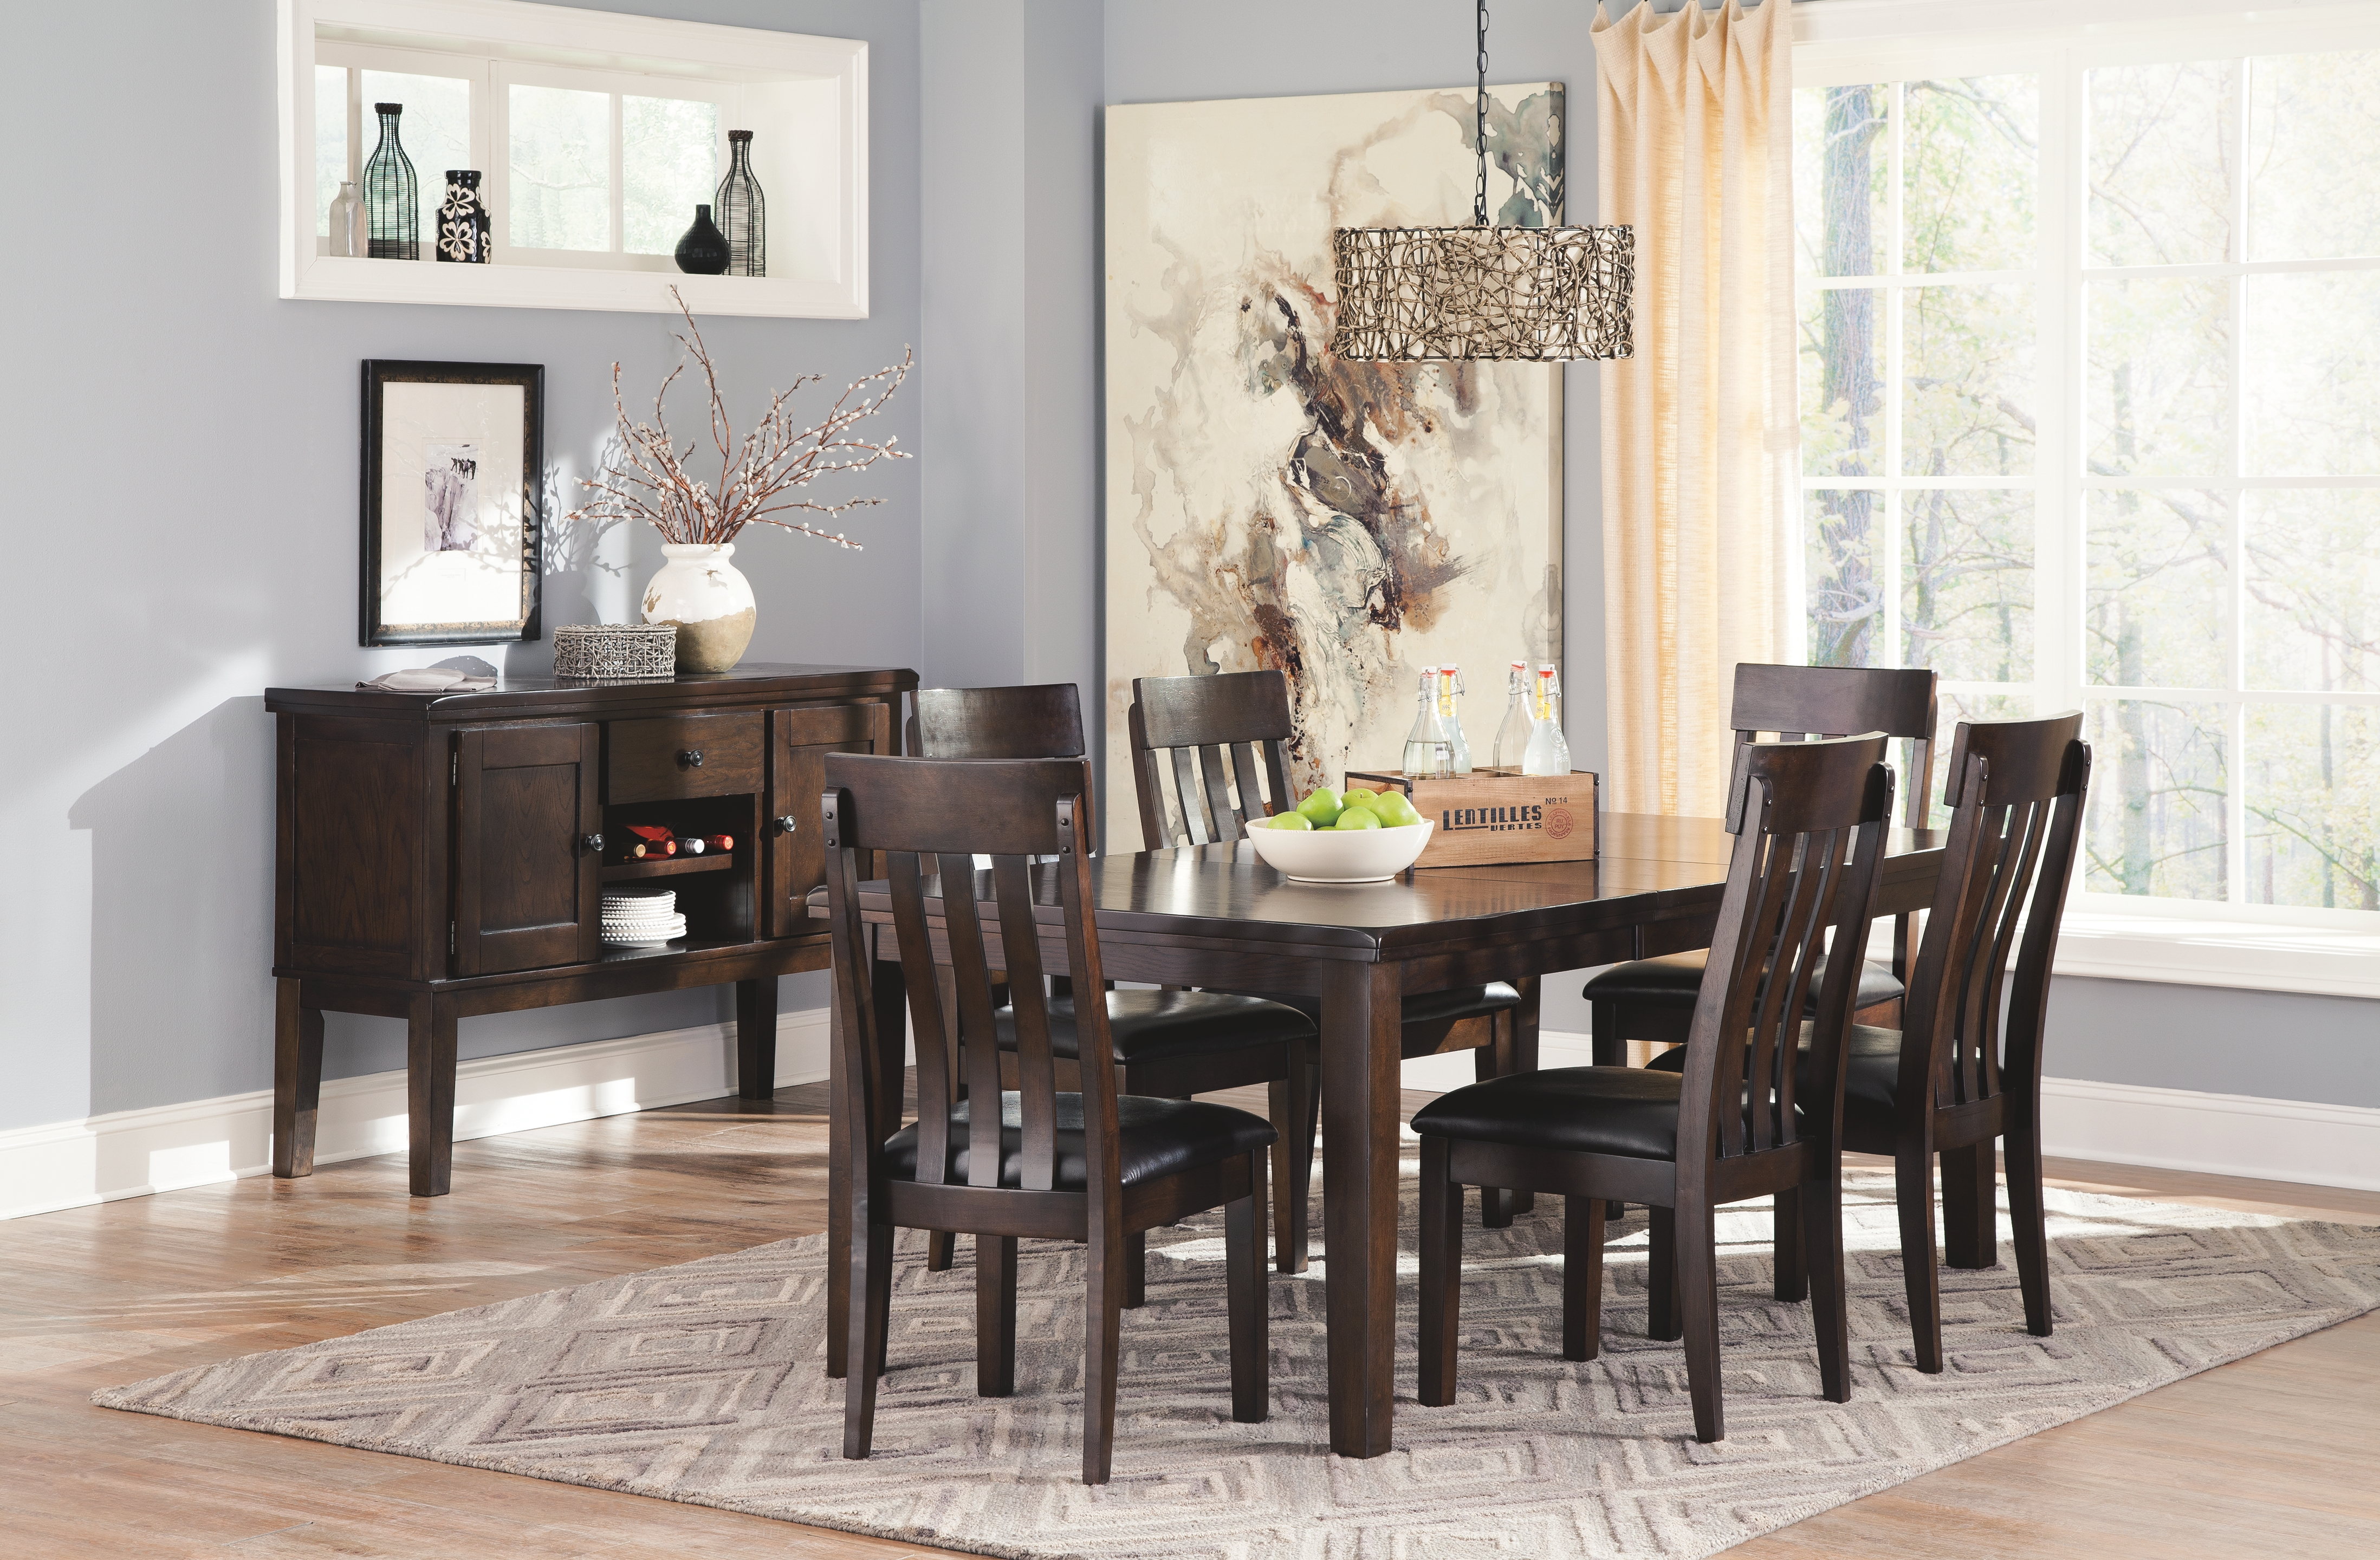 Haddigan Dining Room Table By Signature Design By Ashley D596 35 Northpoint Furniture Mattress